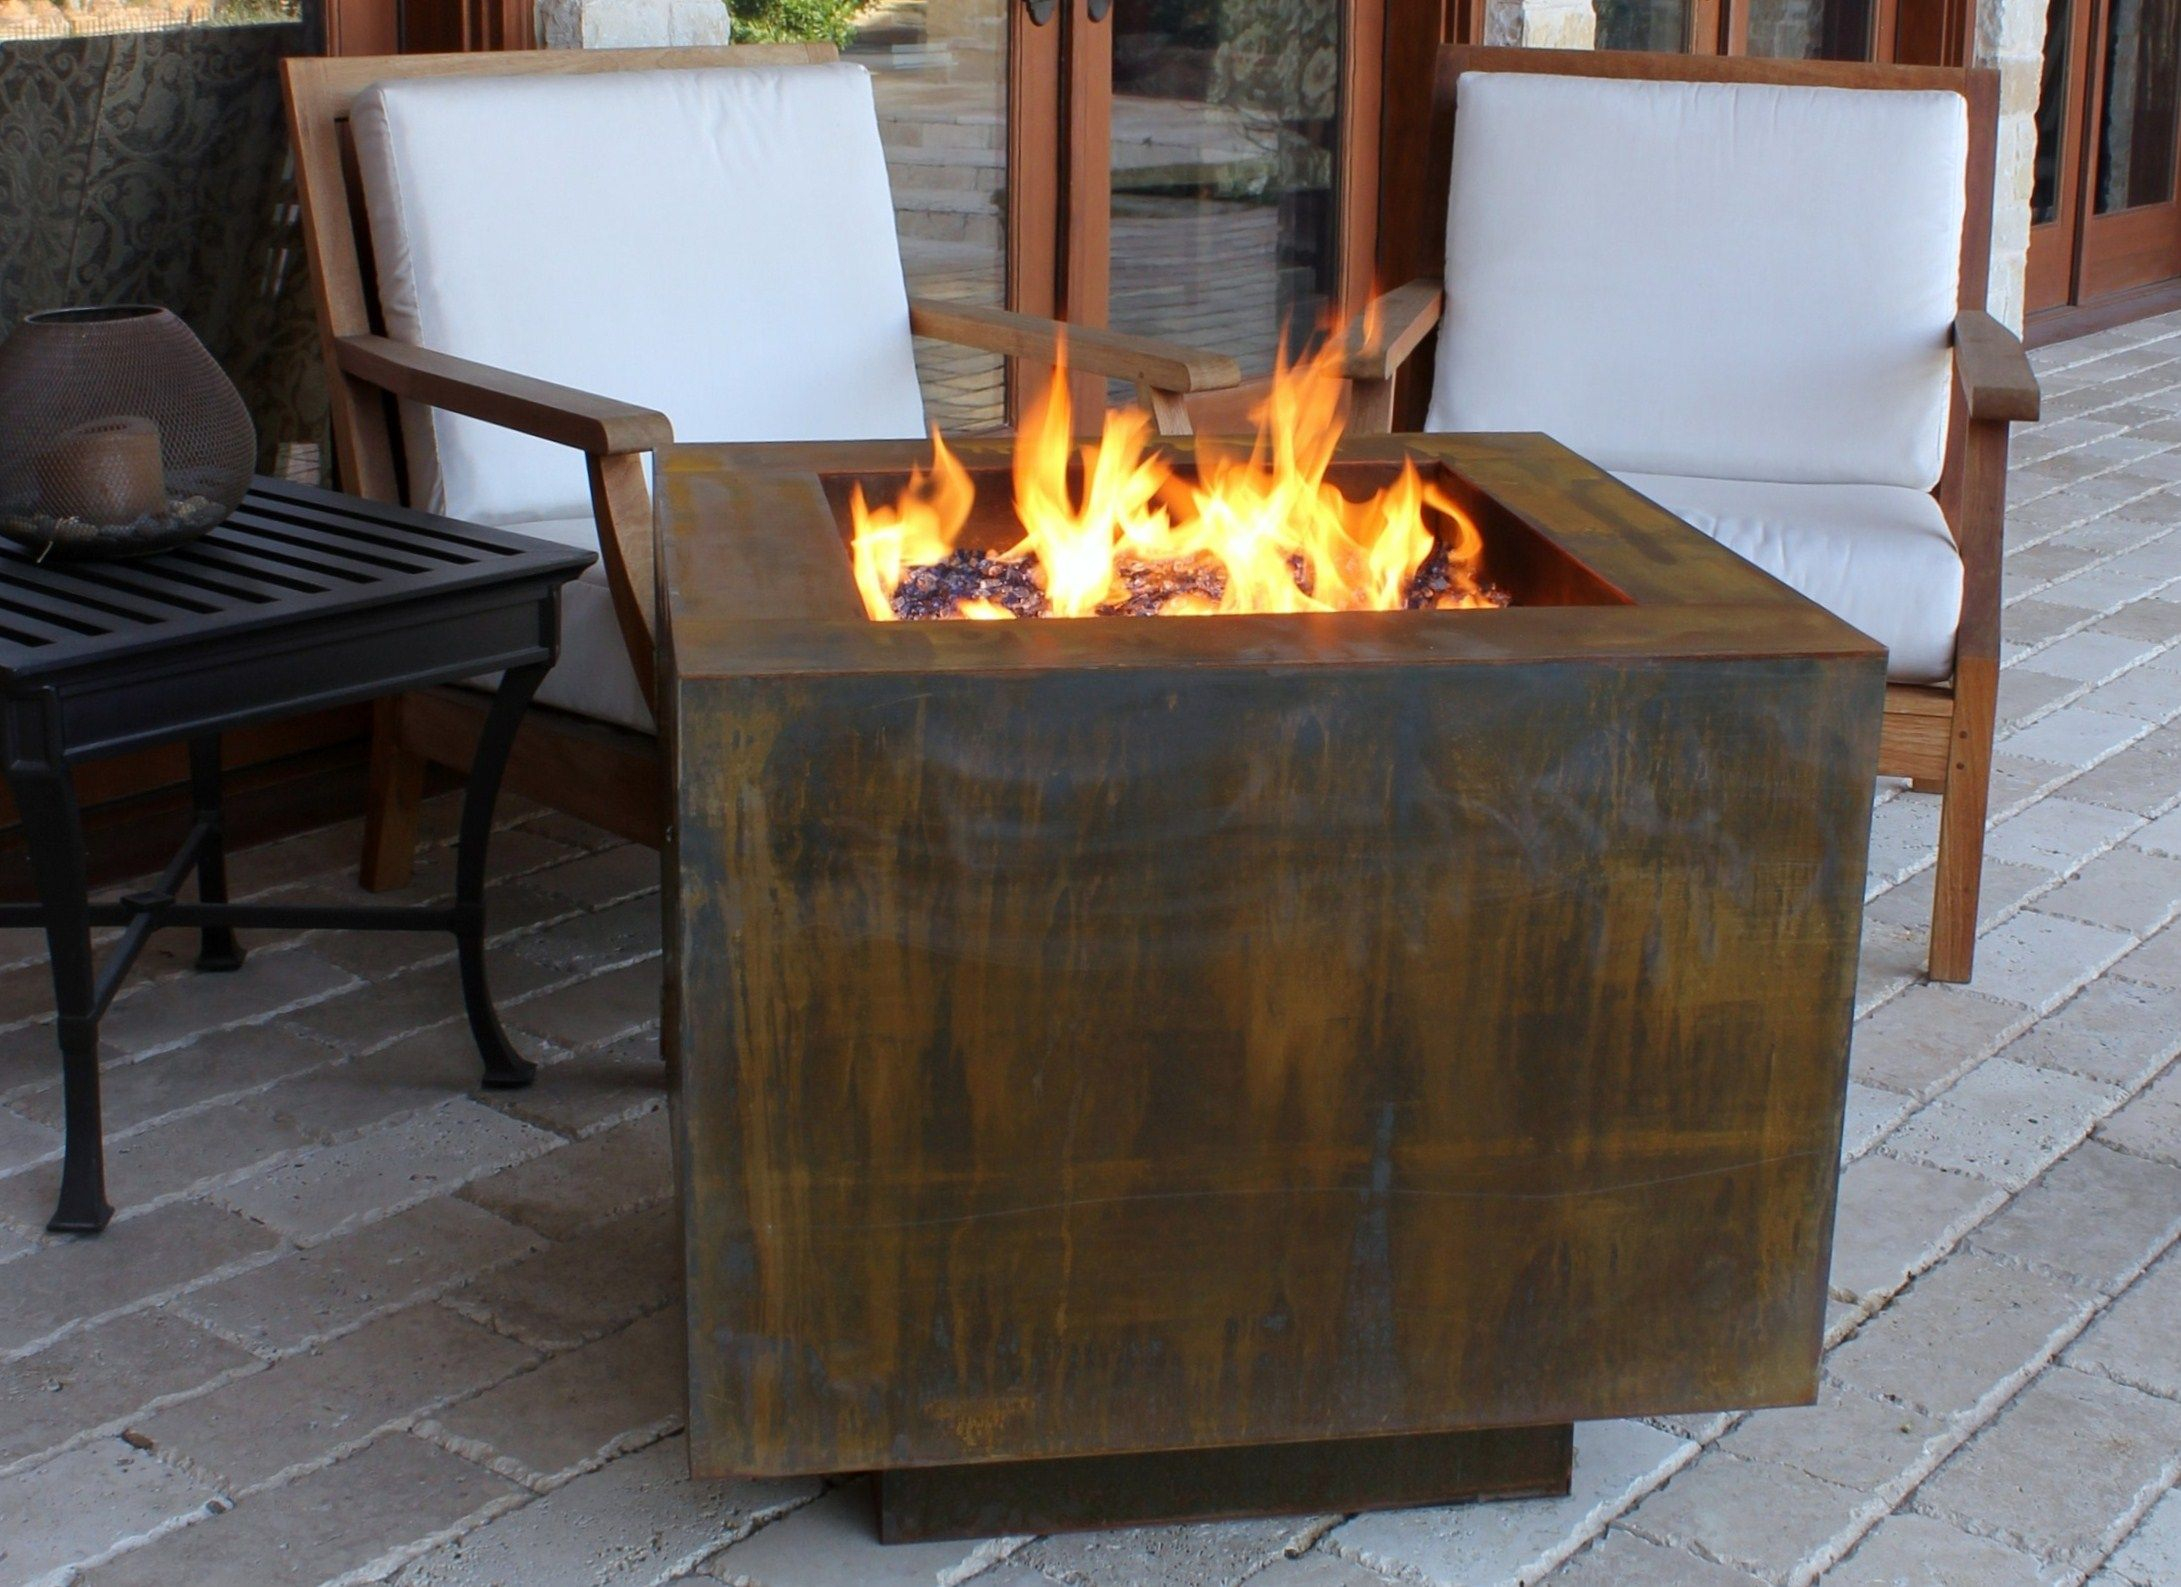 Square Hidden Propane Tank Fire Pit All About The Modern Fire throughout dimensions 2181 X 1587